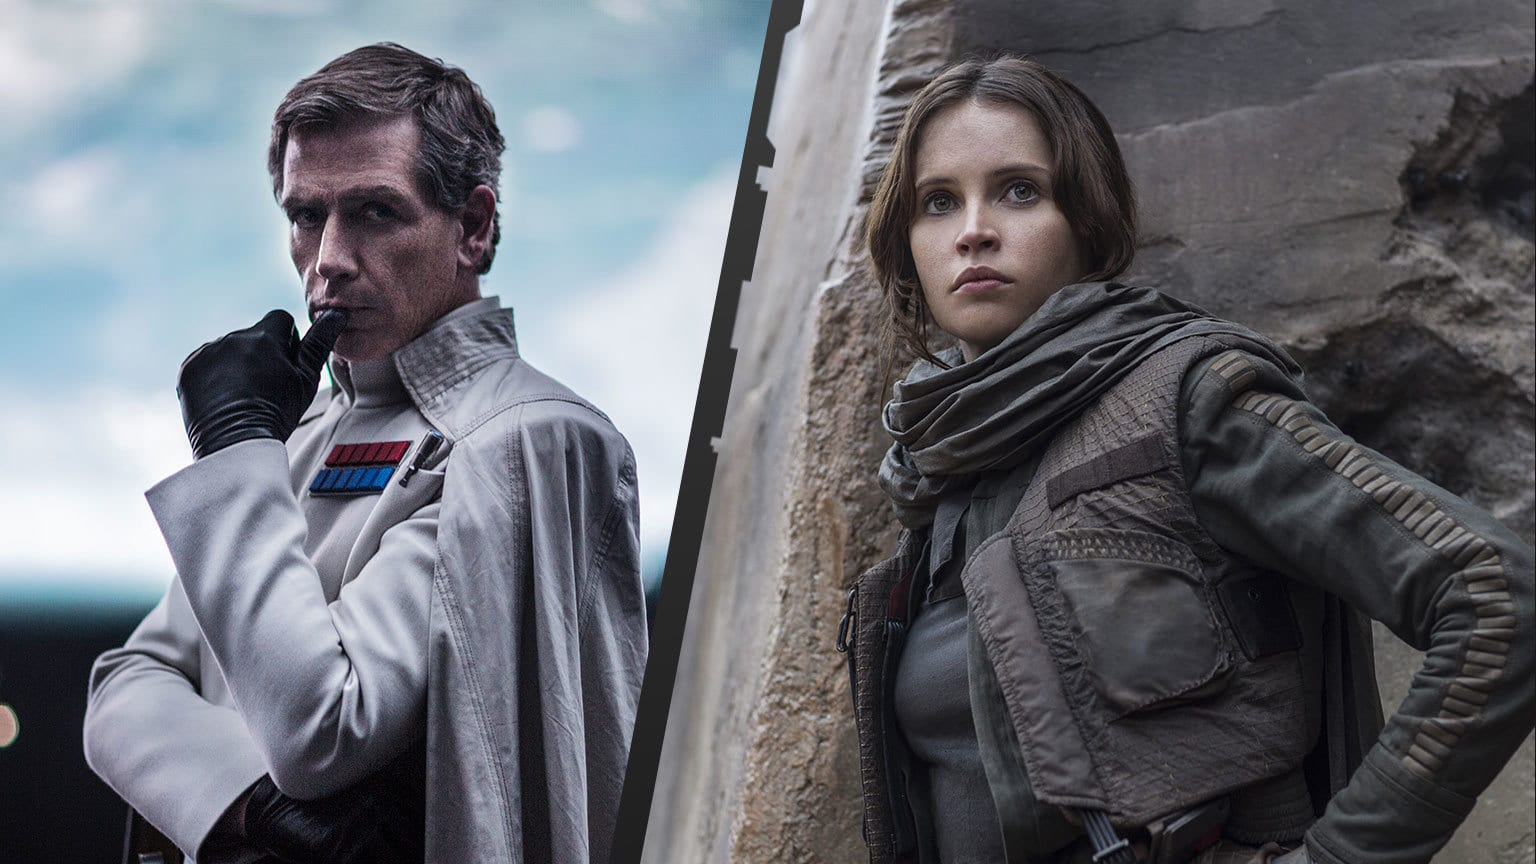 Quiz: Are You More Jyn Erso or Orson Krennic?